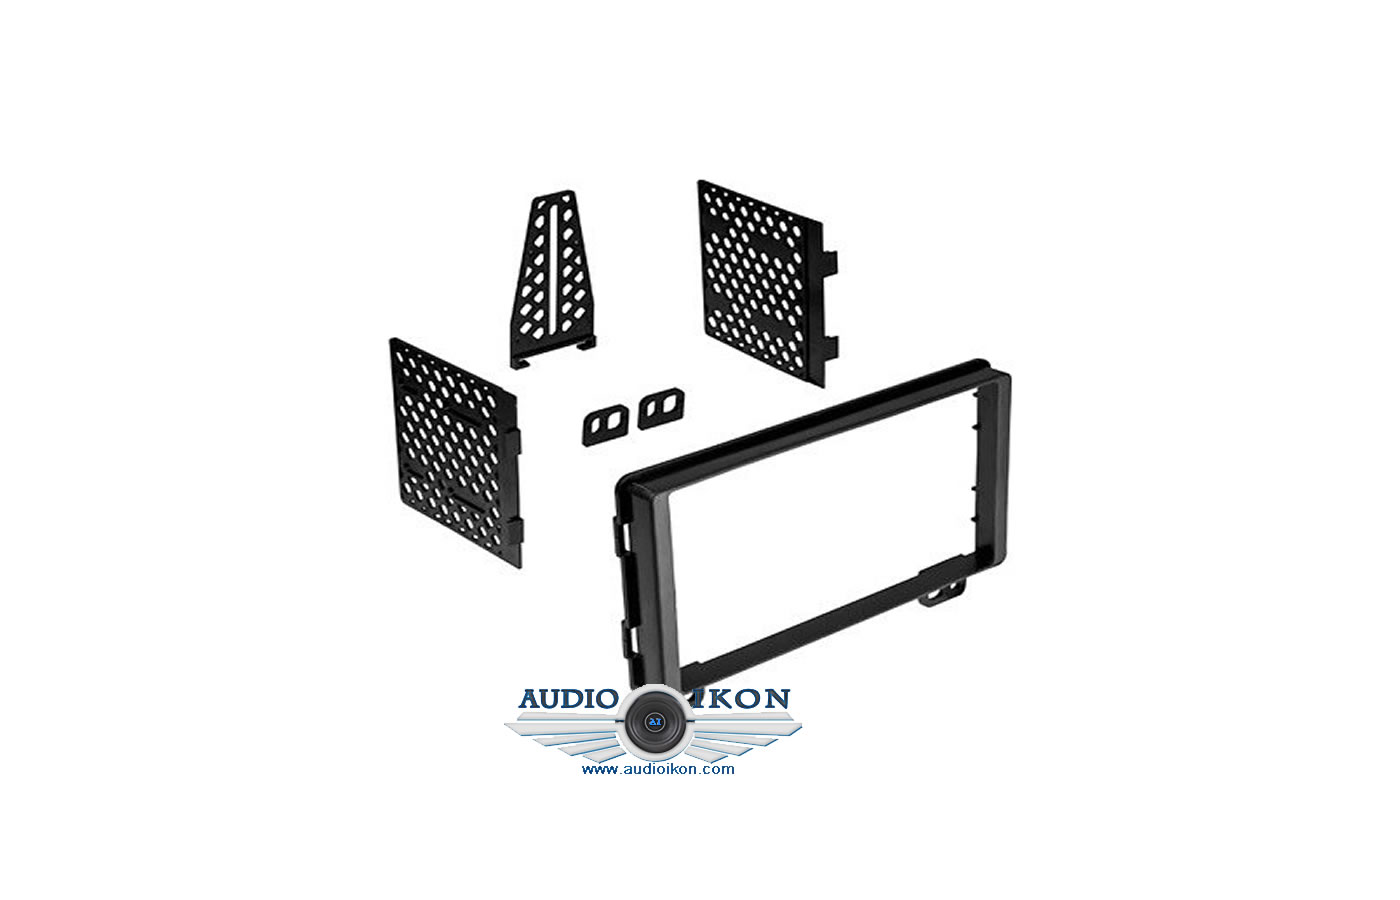 audioikon com car audio  amplifiers  speakers  car